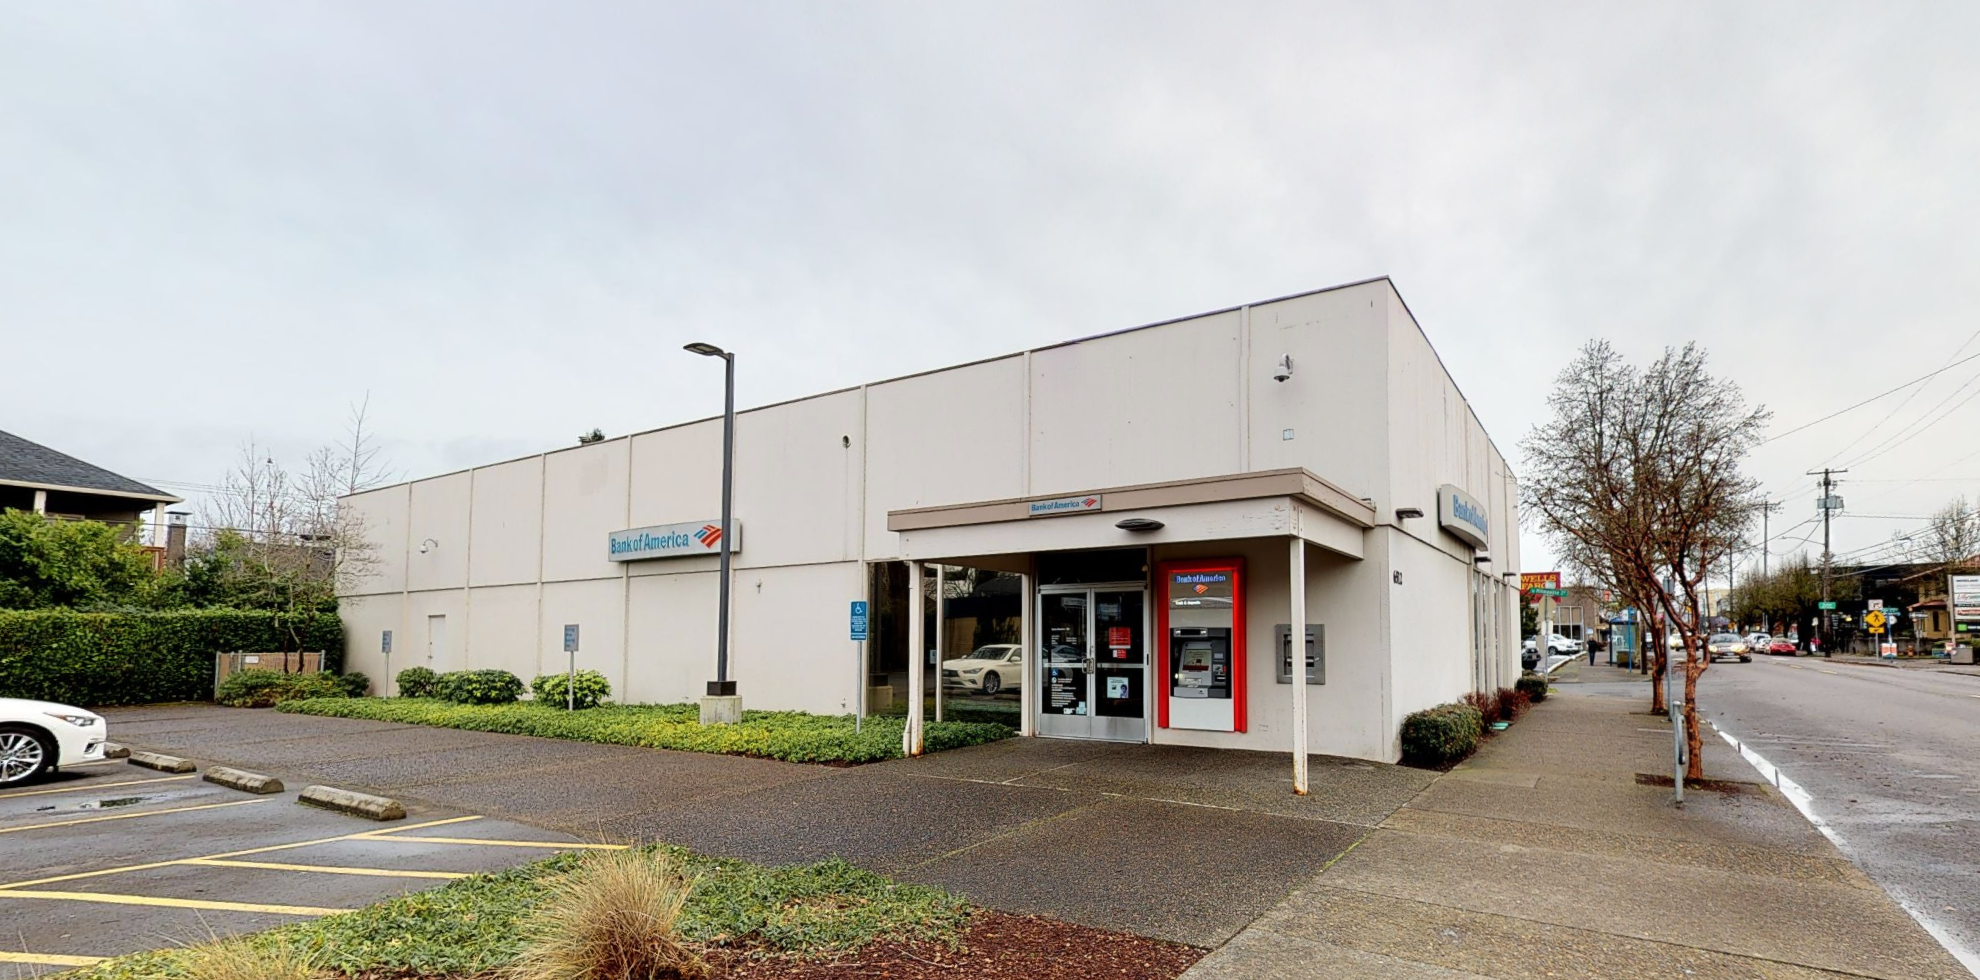 Bank of America financial center with walk-up ATM   6512 SE Milwaukie Ave, Portland, OR 97202